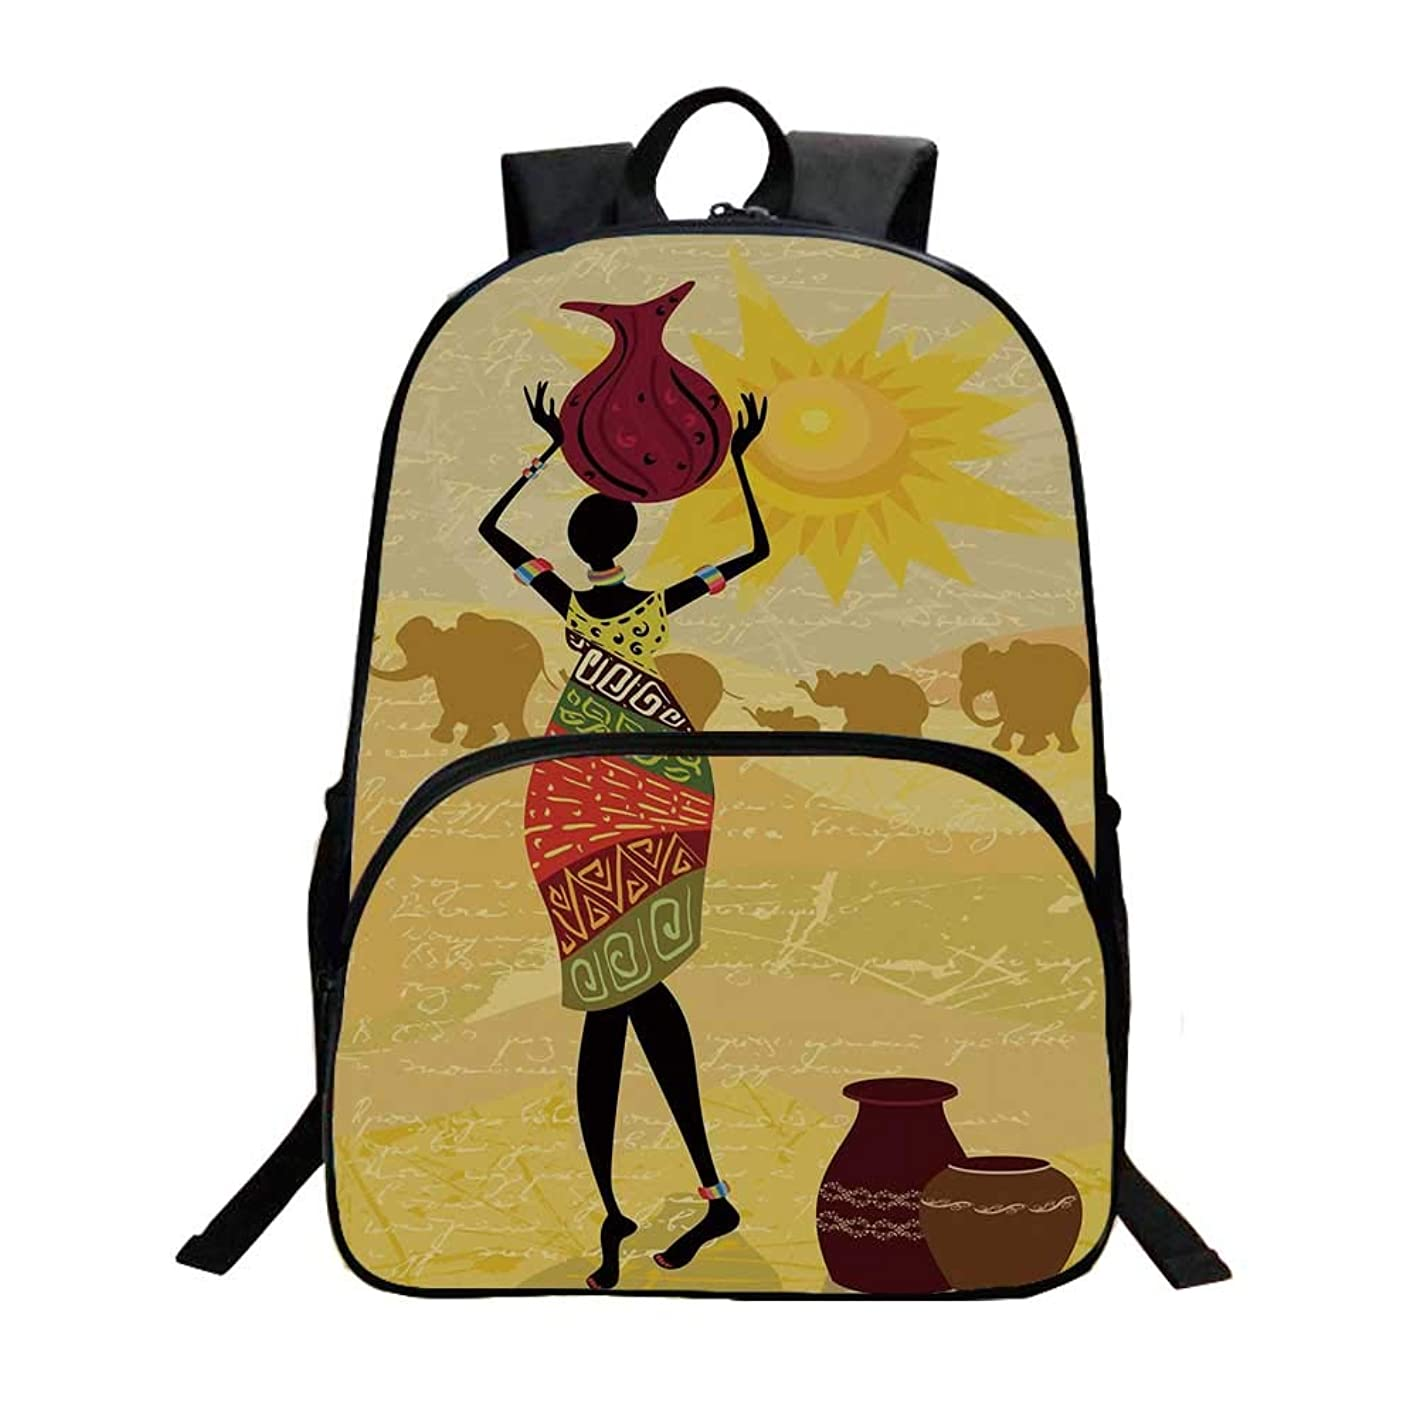 African Woman Fashionable Backpack,Artistic Vintage Landscape Local Woman Elephants Sun Figure Hand Writing Decorative for Boys,11.8